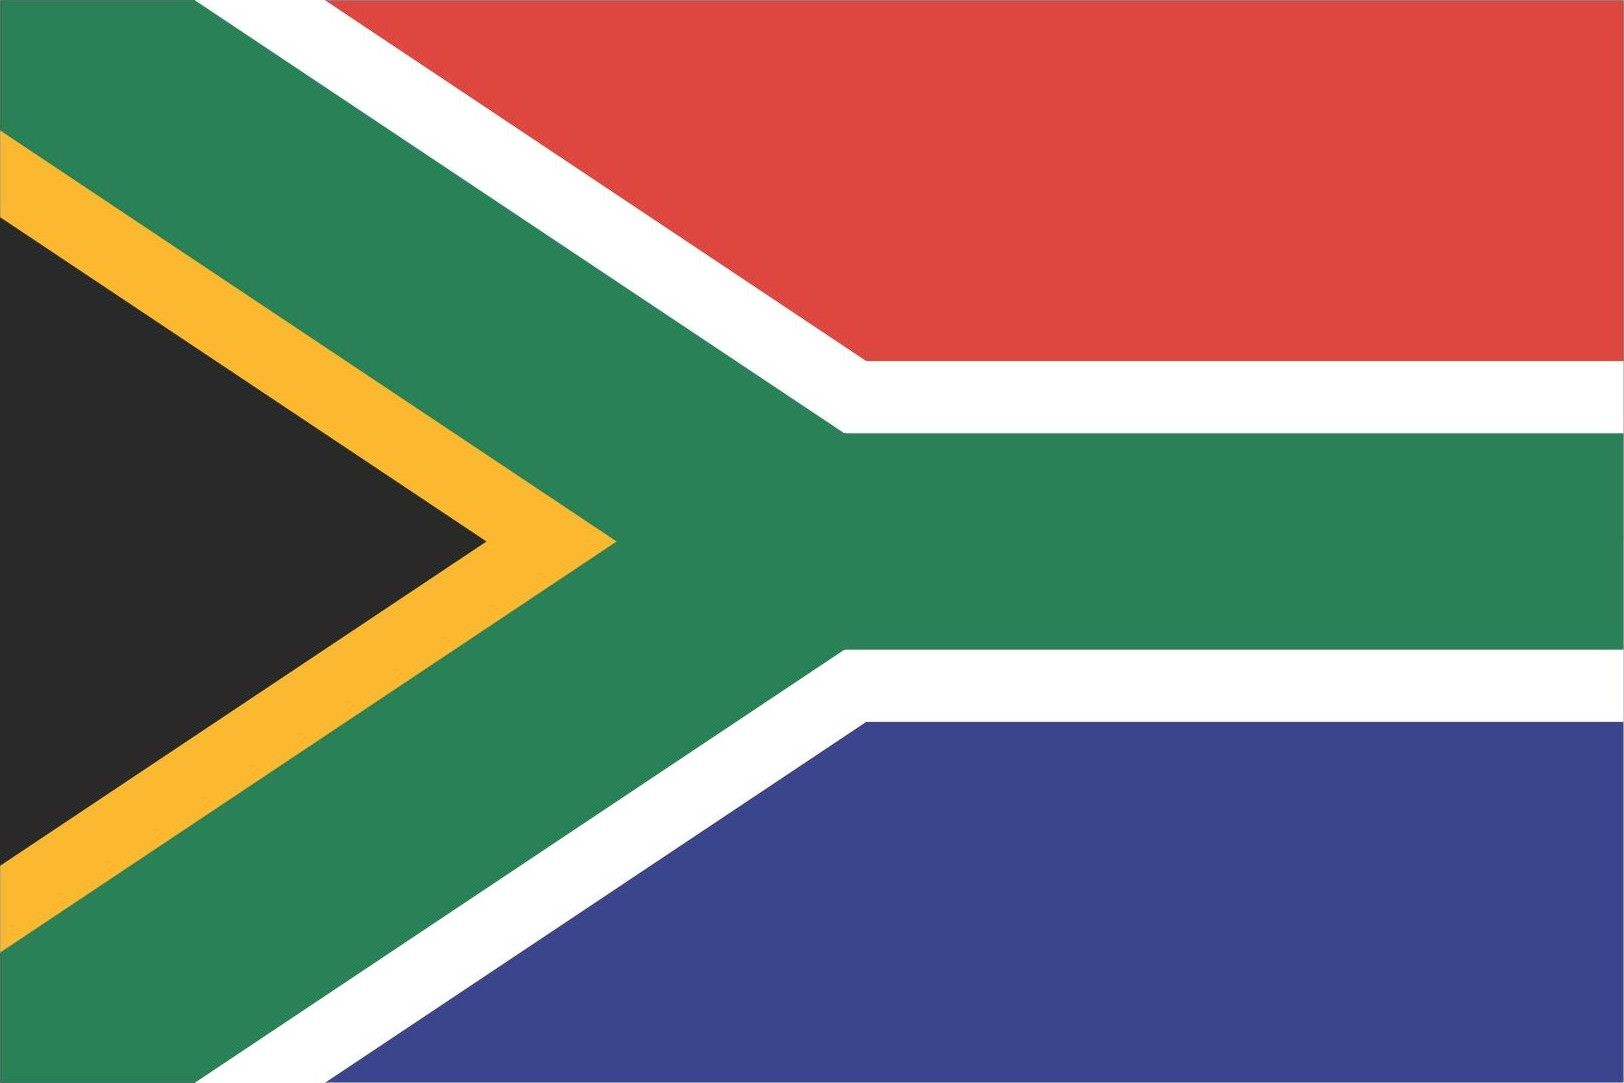 South Africa Flag And Emblem South African South Africa Flag Africa Flag South African Flag